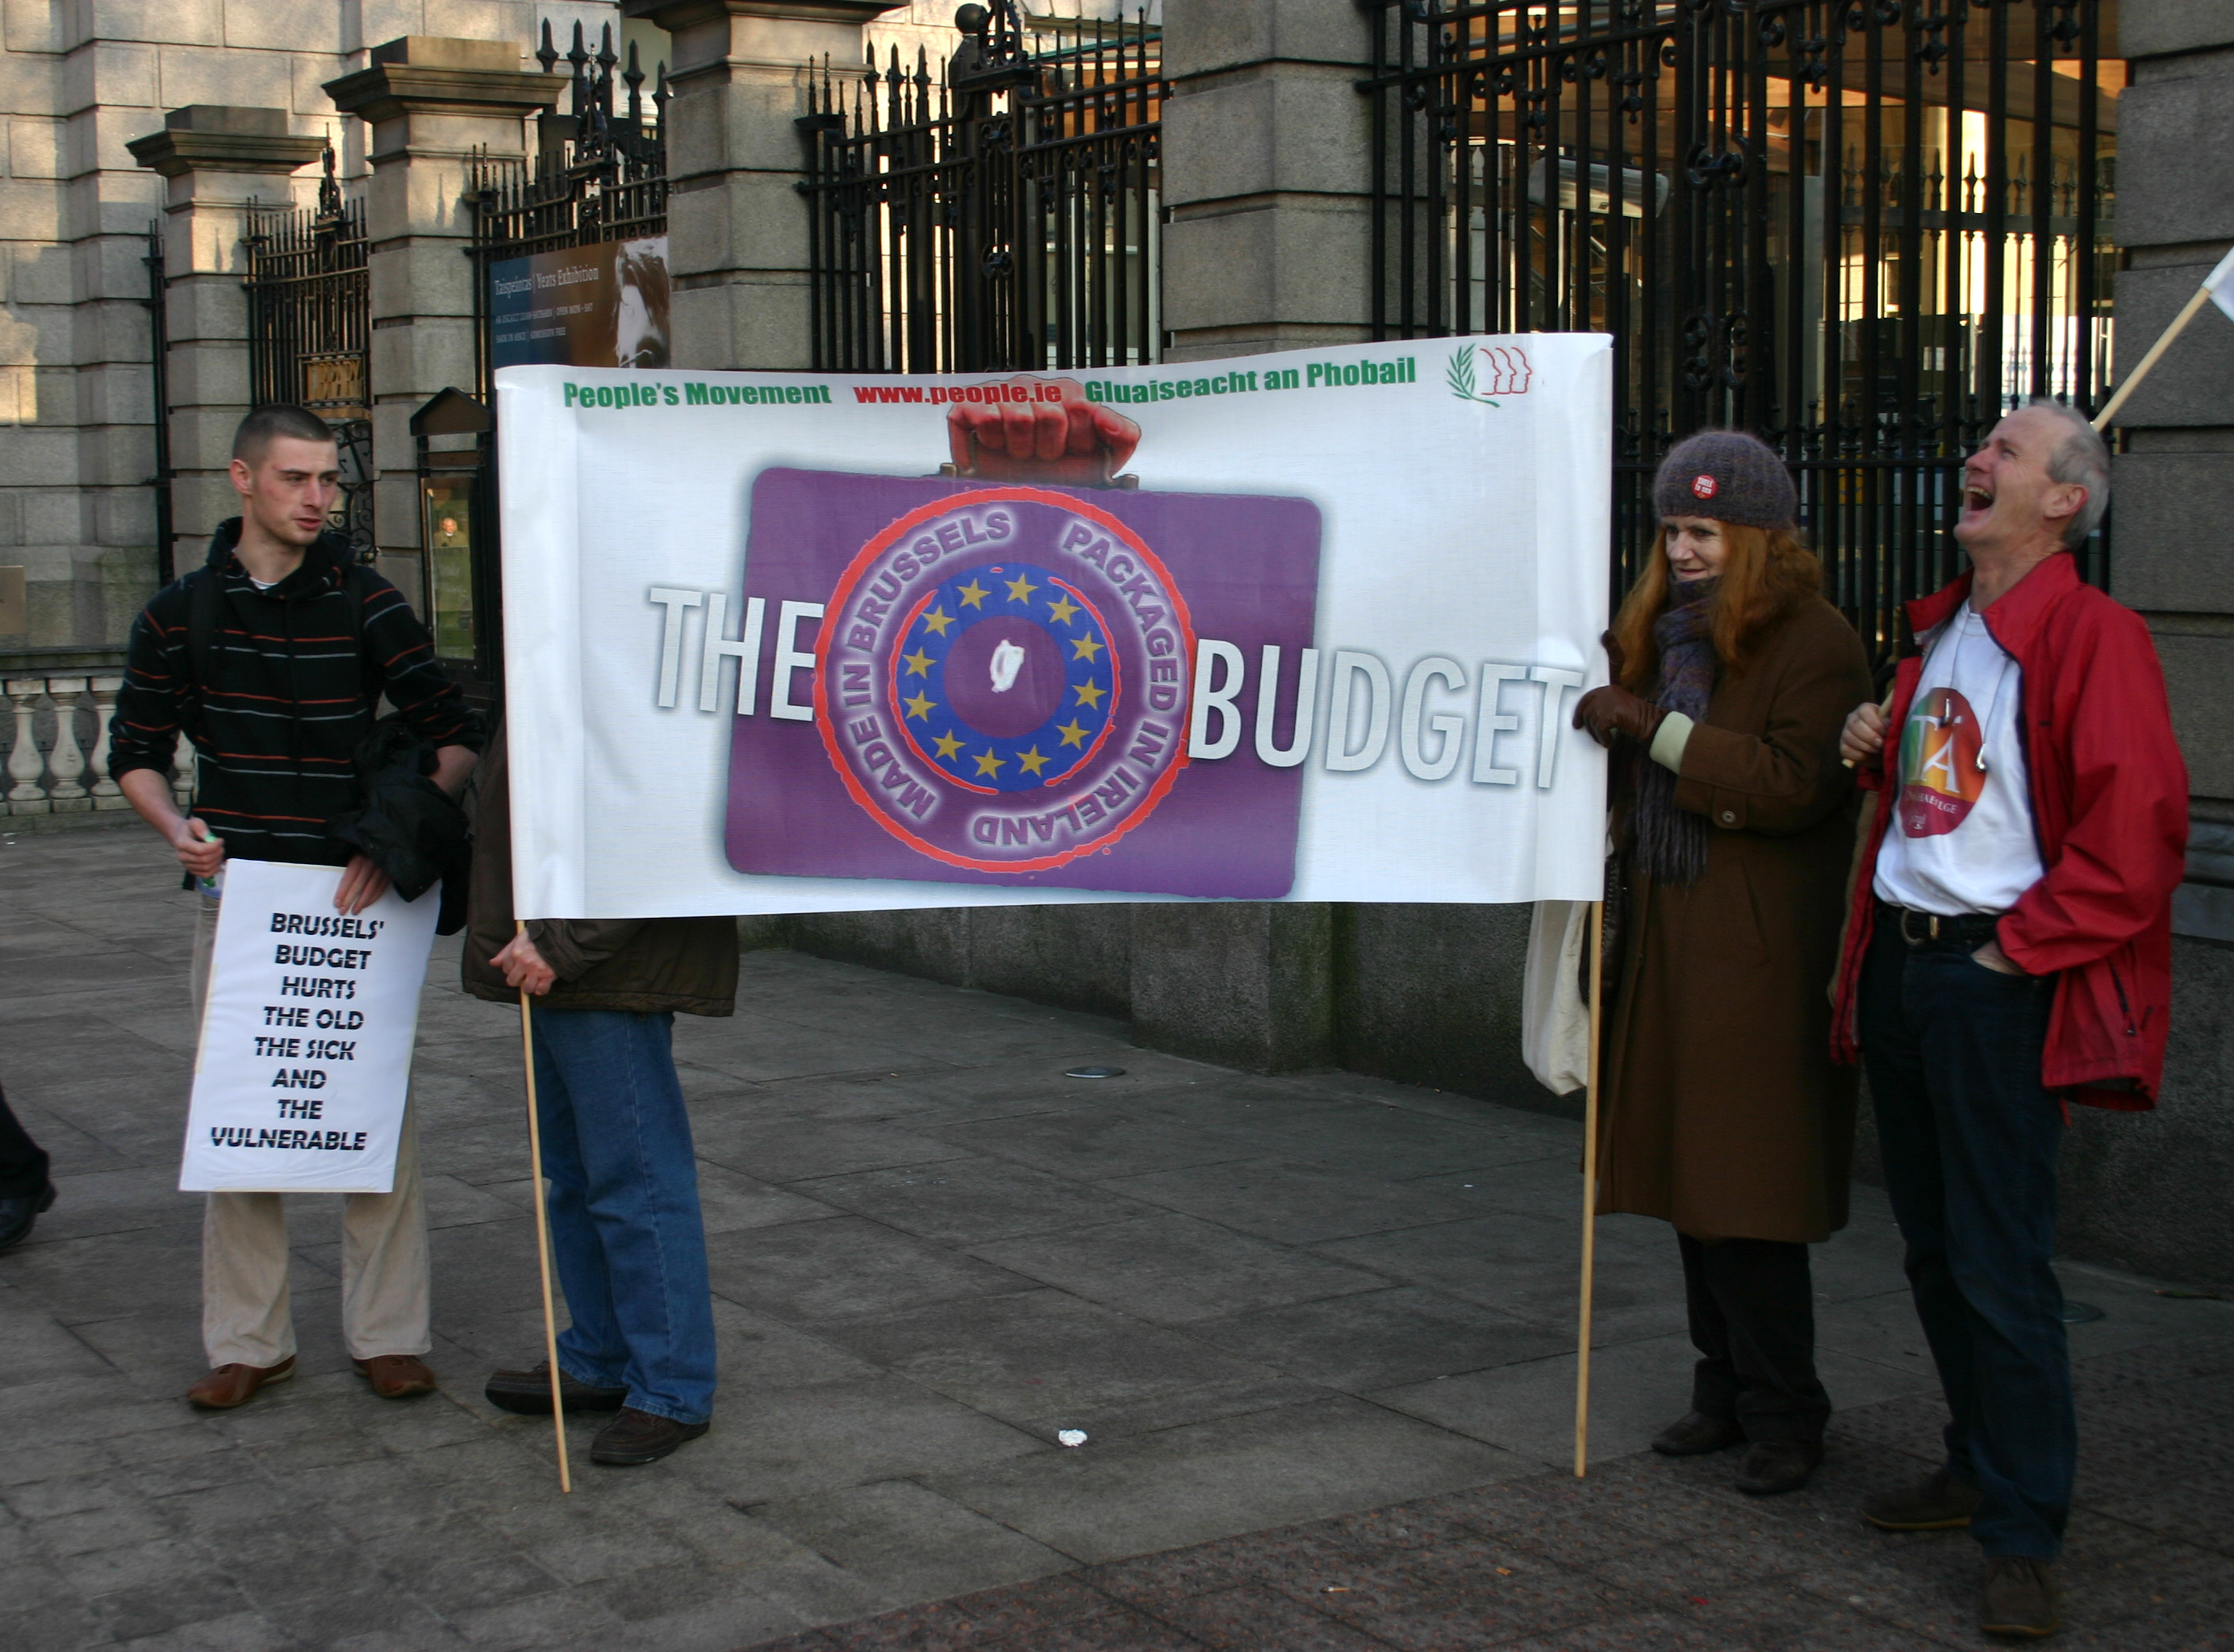 Protesting against austerity policy in Dublin